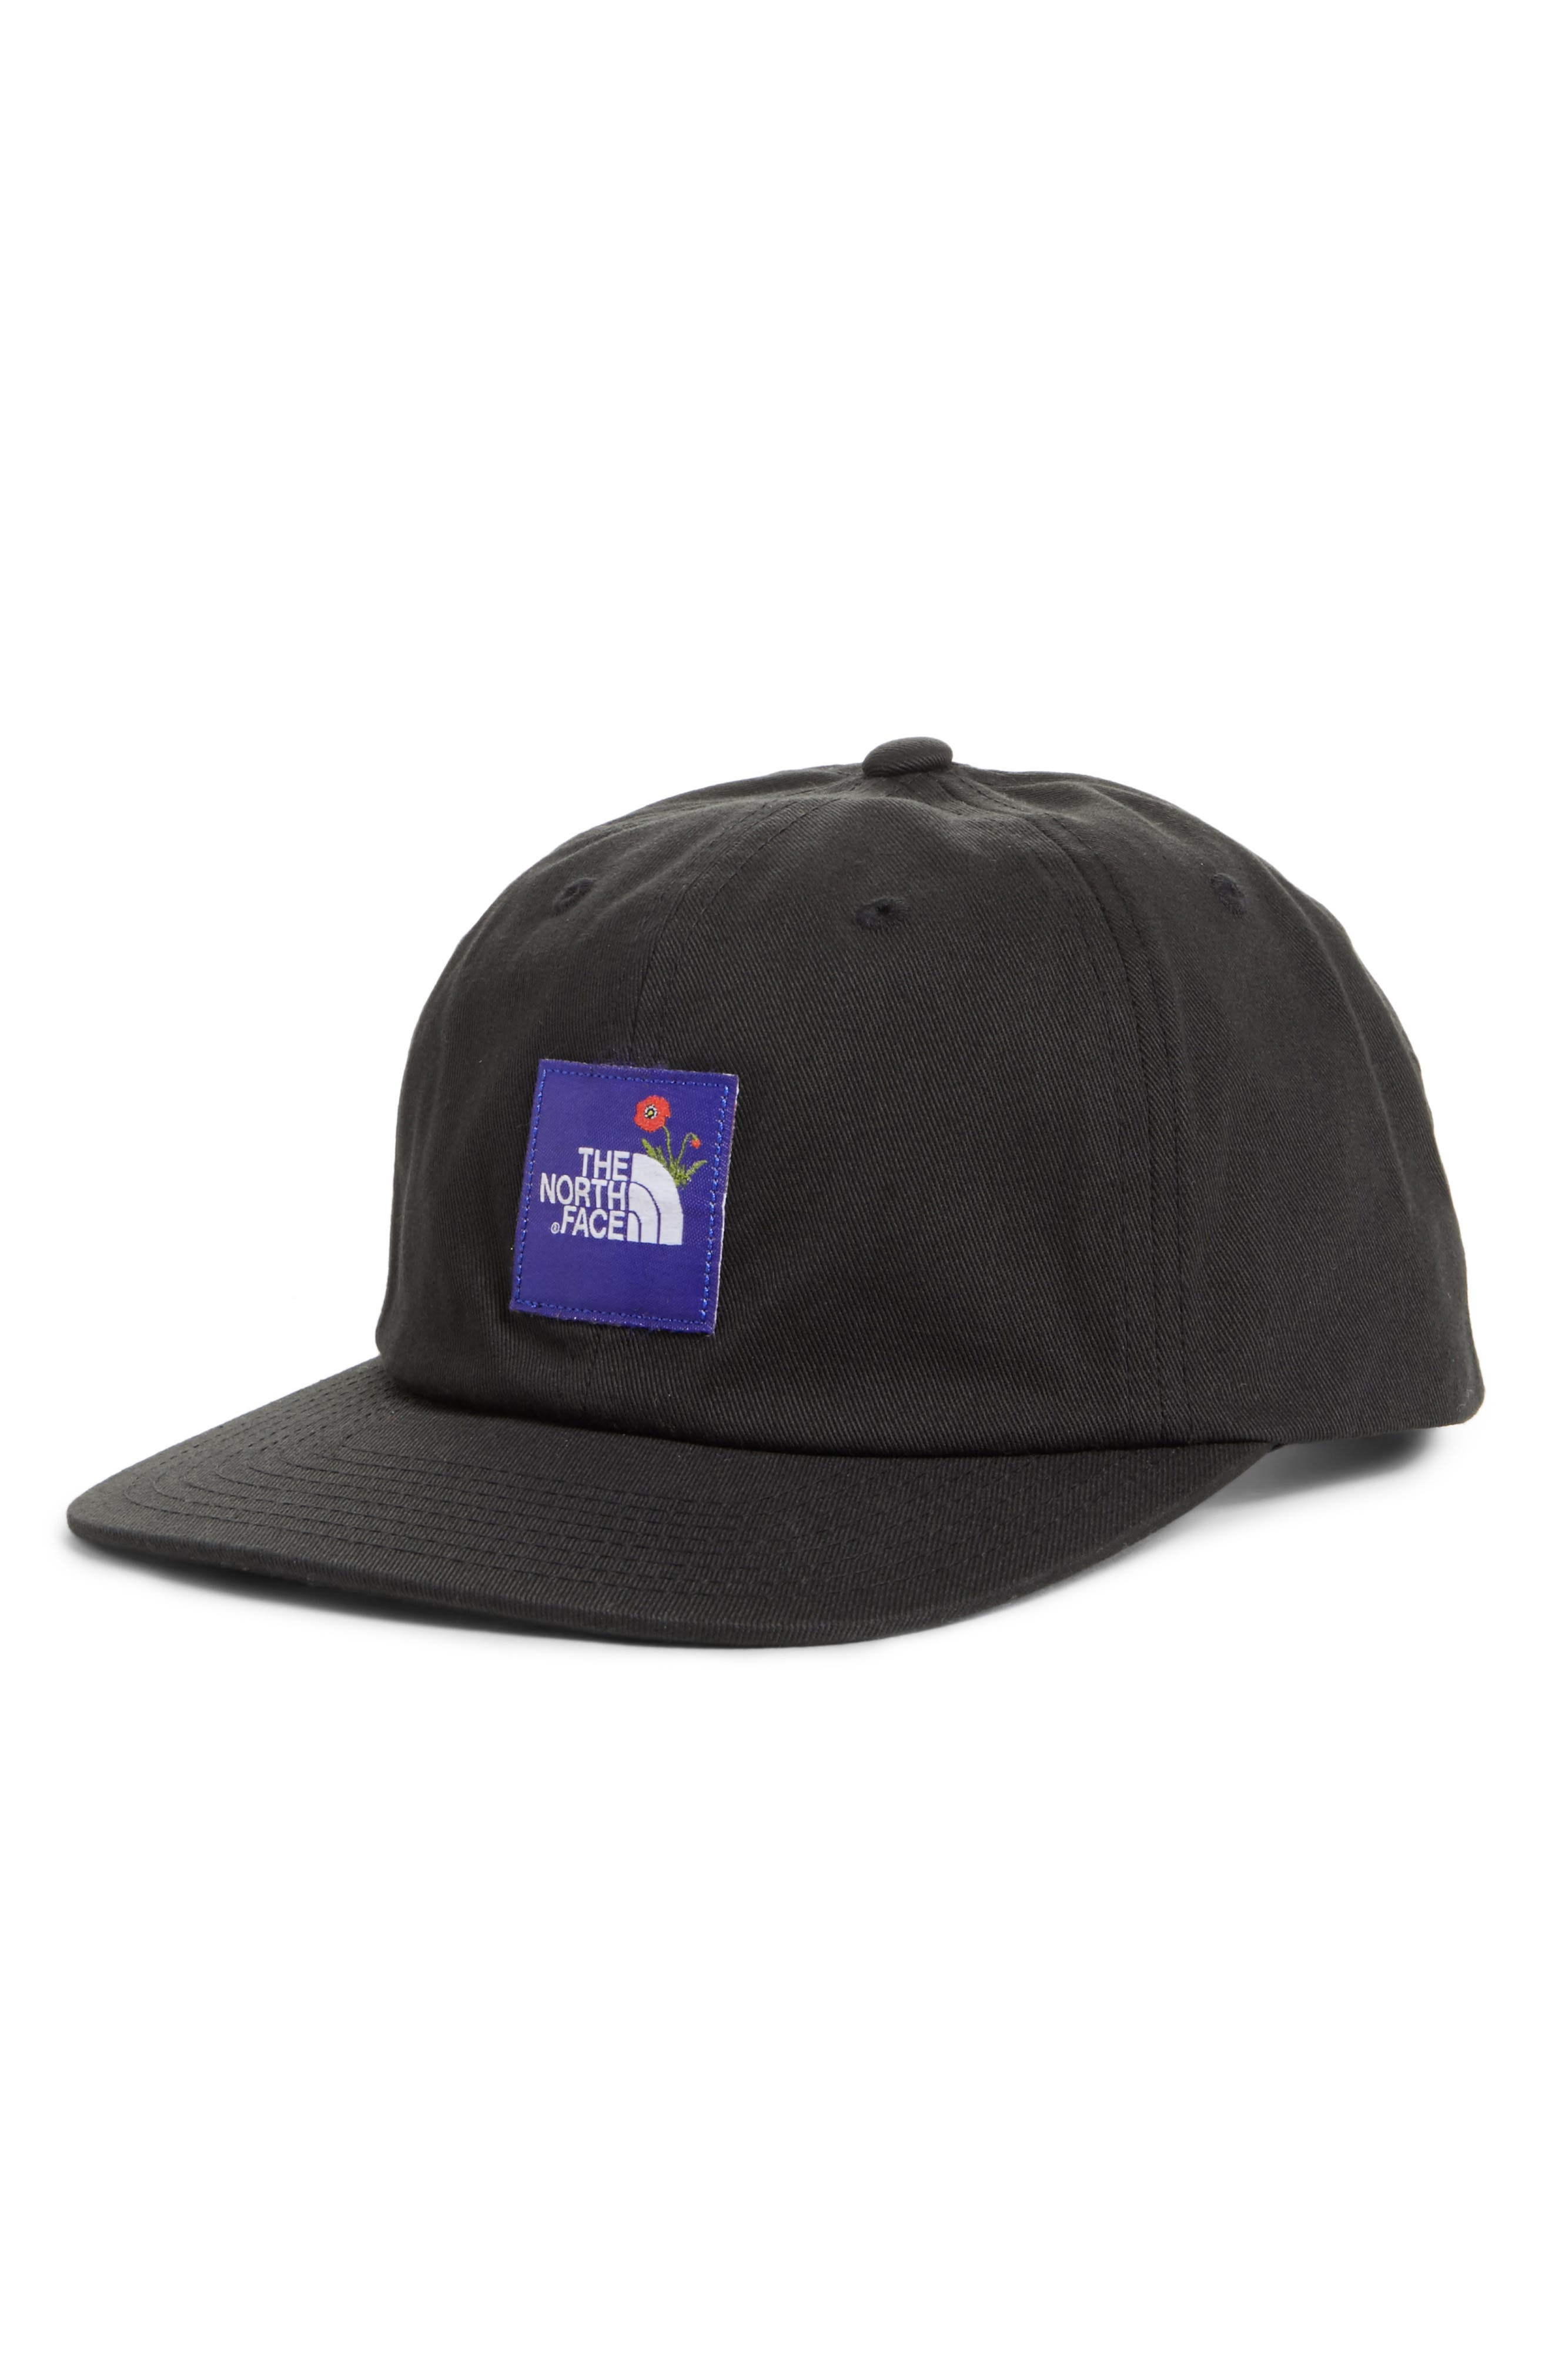 Poppy Adjustable Cap,                         Main,                         color, Tnf Black